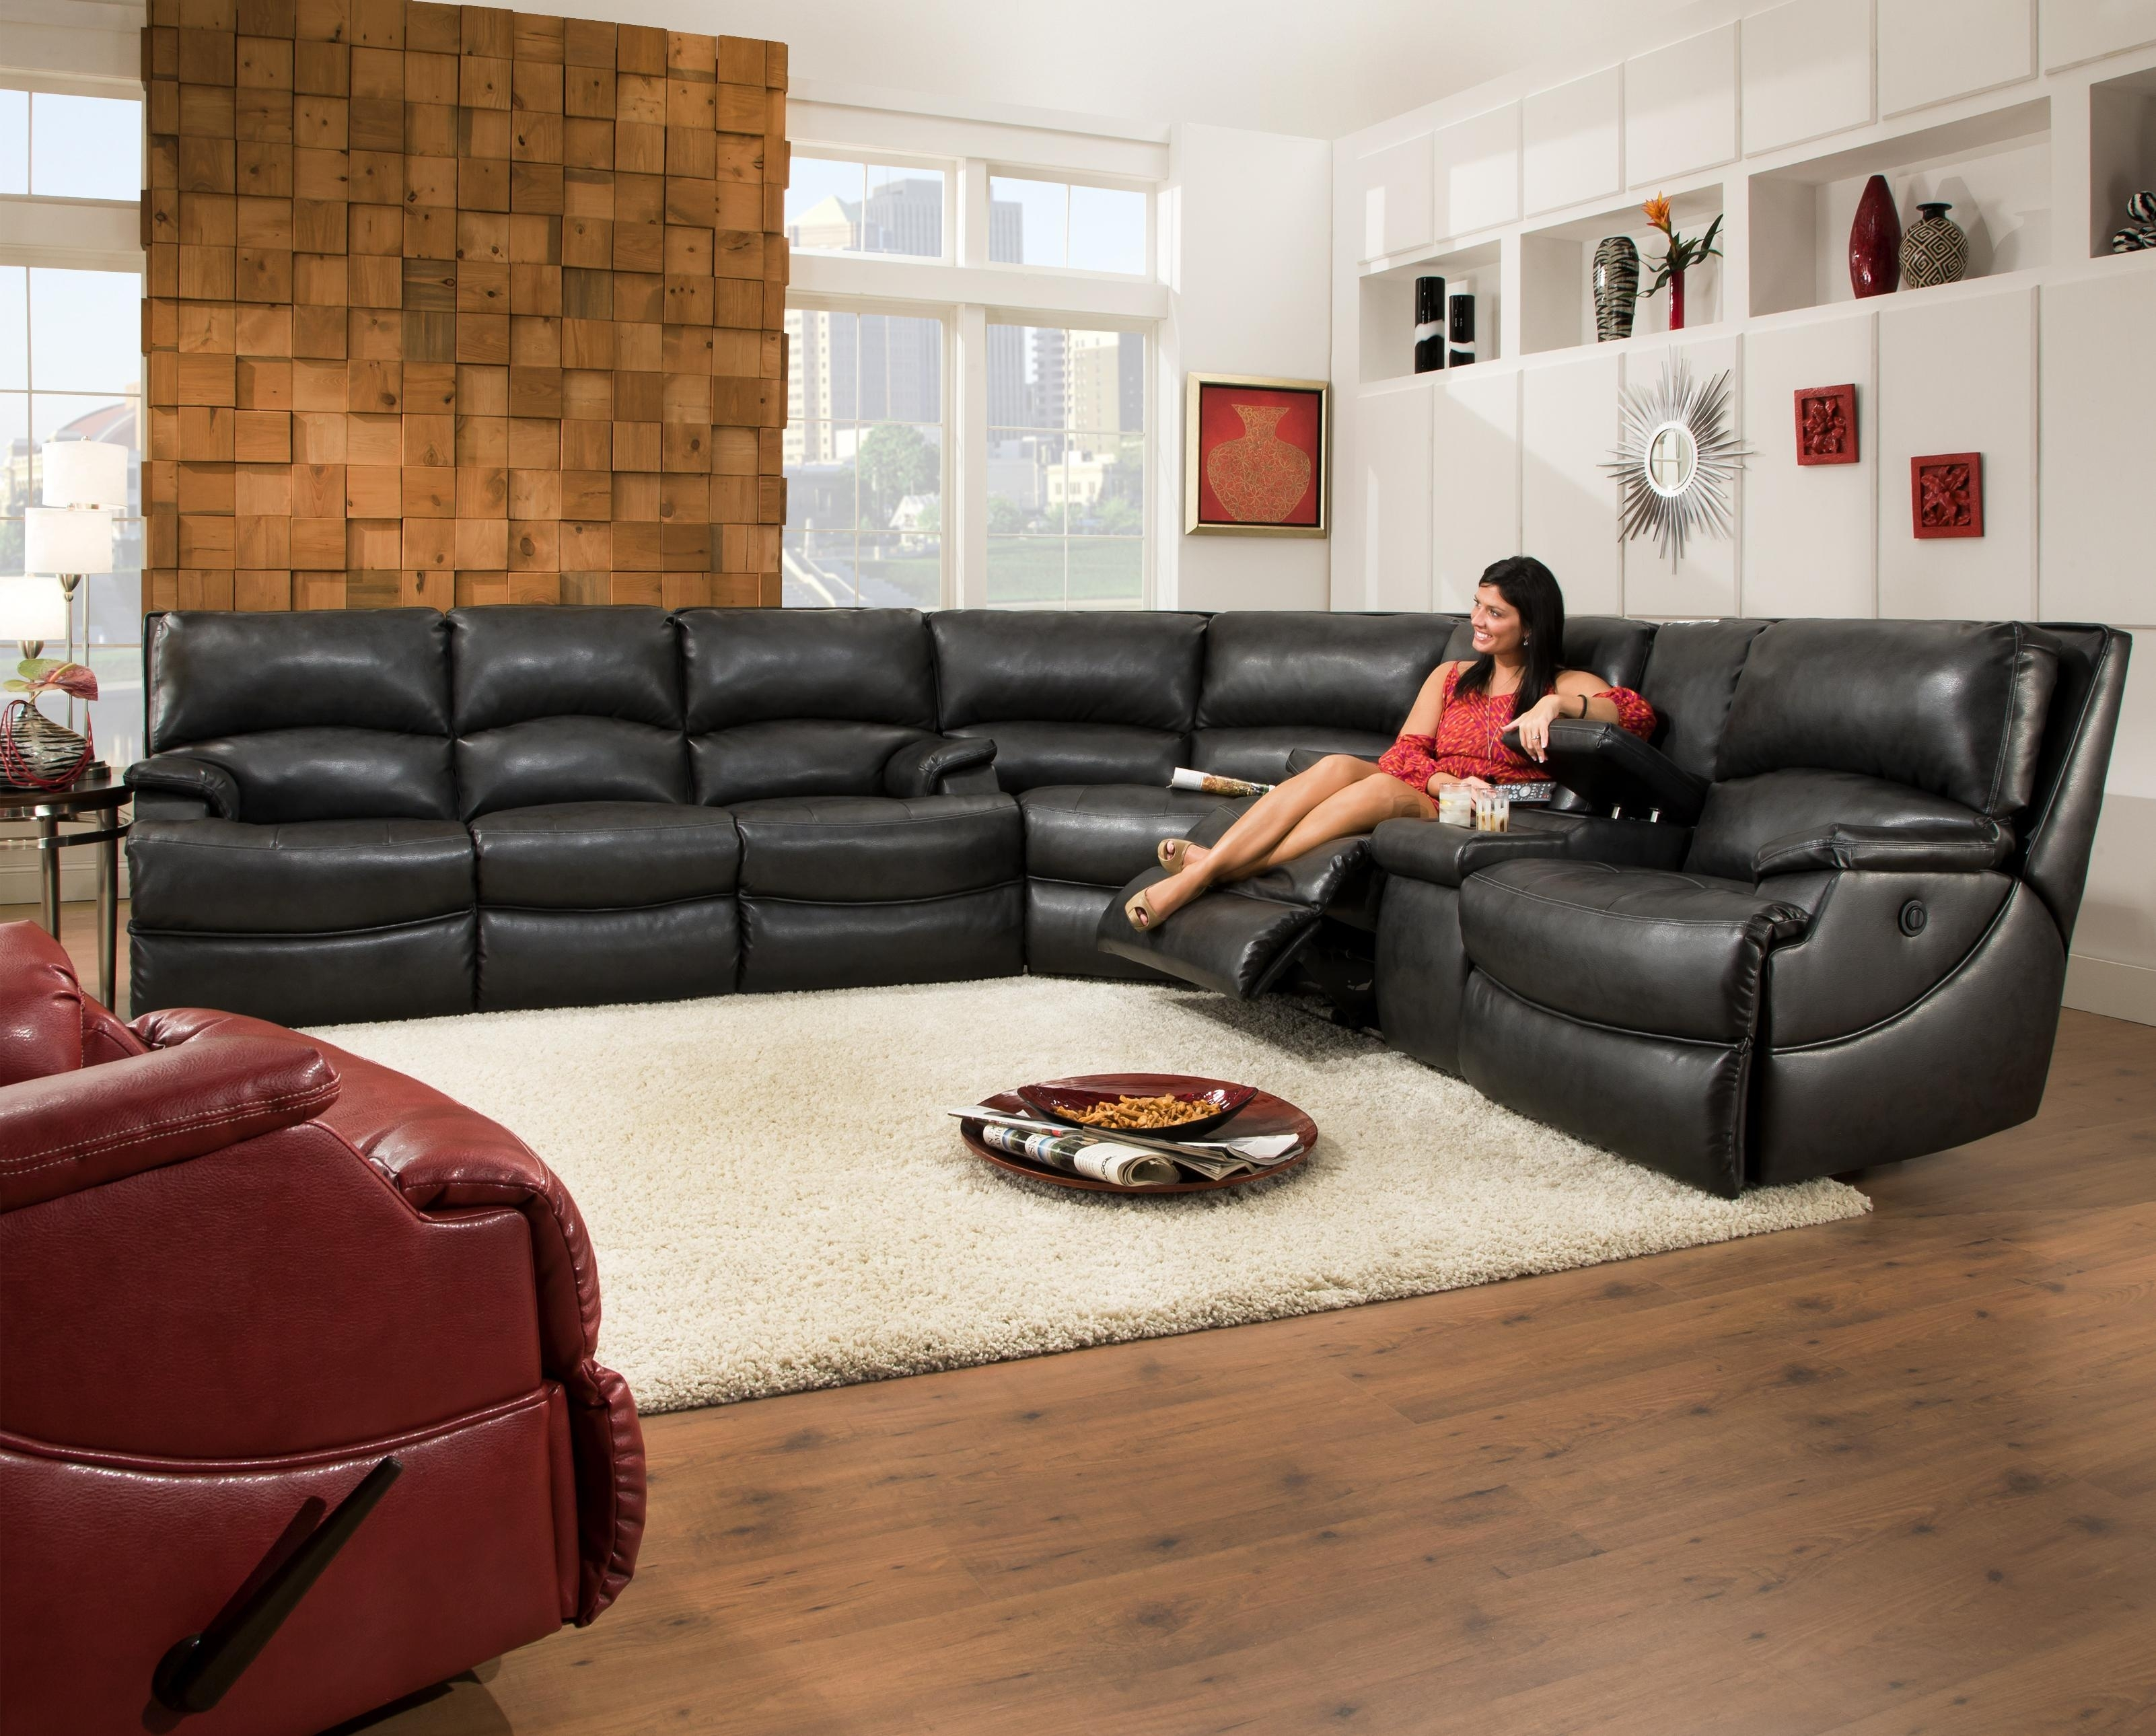 Best Sectional Recliner Sofa With Cup Holders 41 On Sectional Sofas with Sectional Sofas at Edmonton